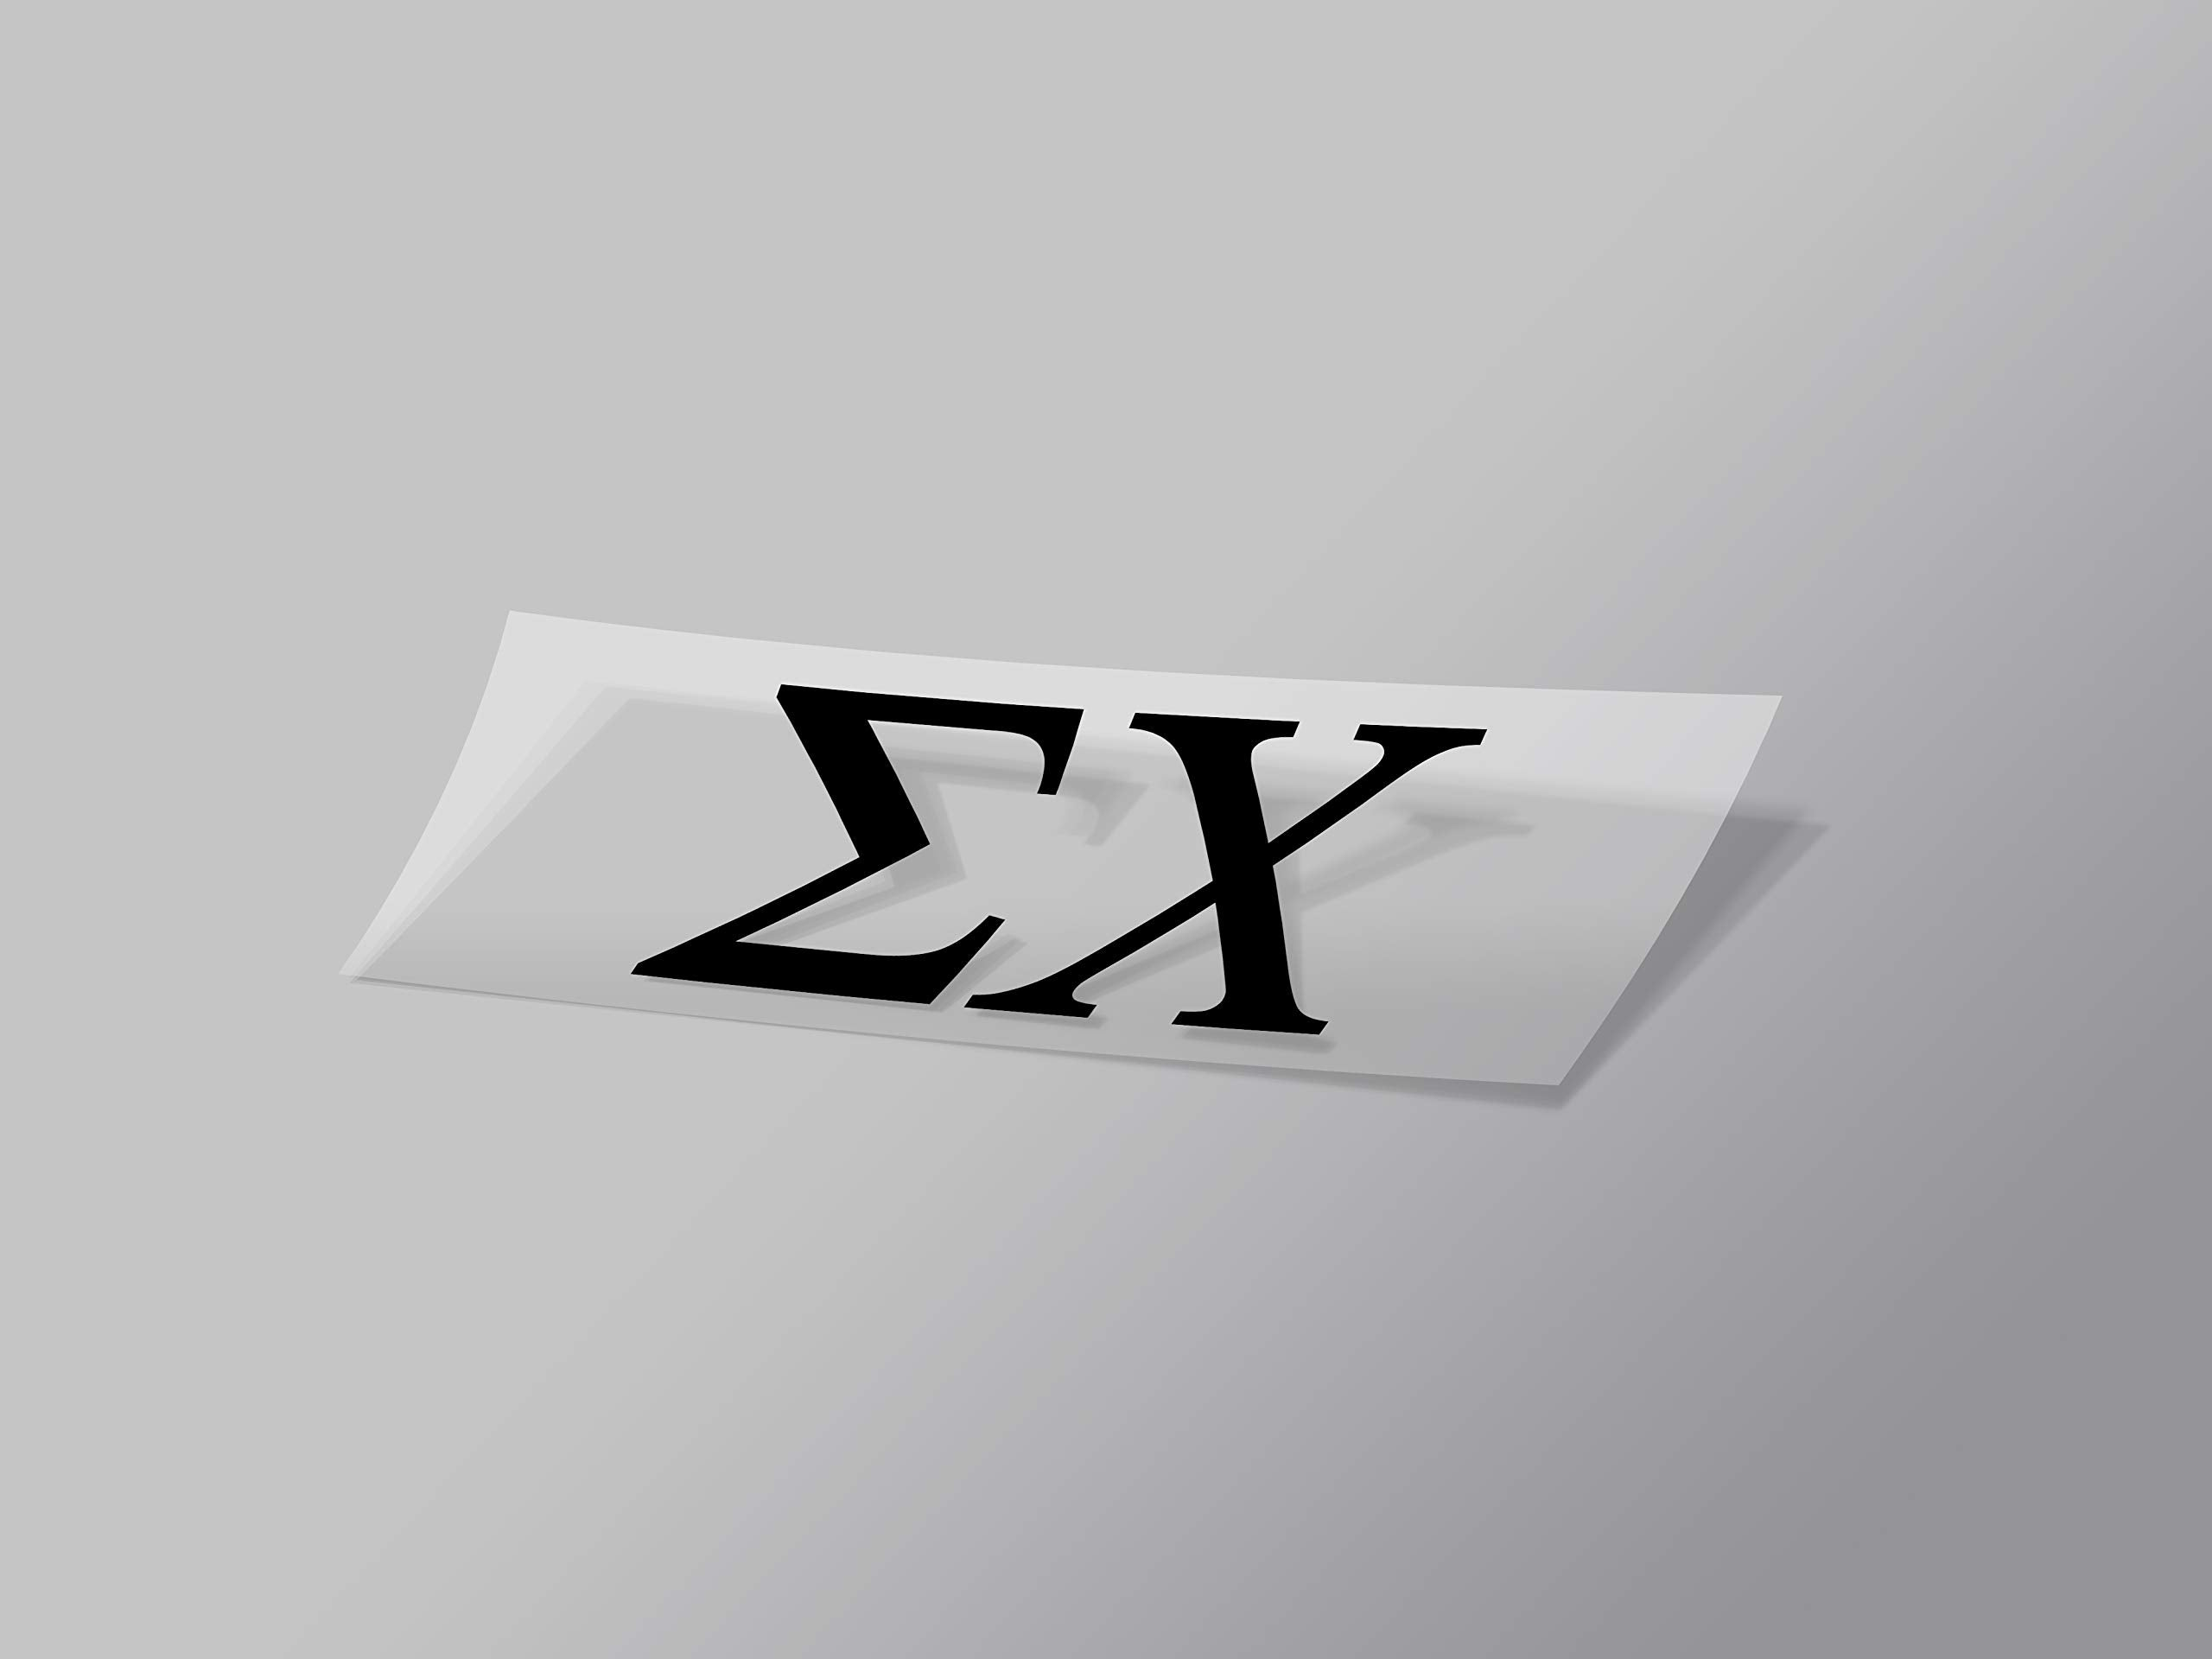 "Sigma Chi Sticker Greek Sorority Decal for Car, Laptop, Windows, Officially Licensed Product, Monogram Design 2.5"" Tall - Black"